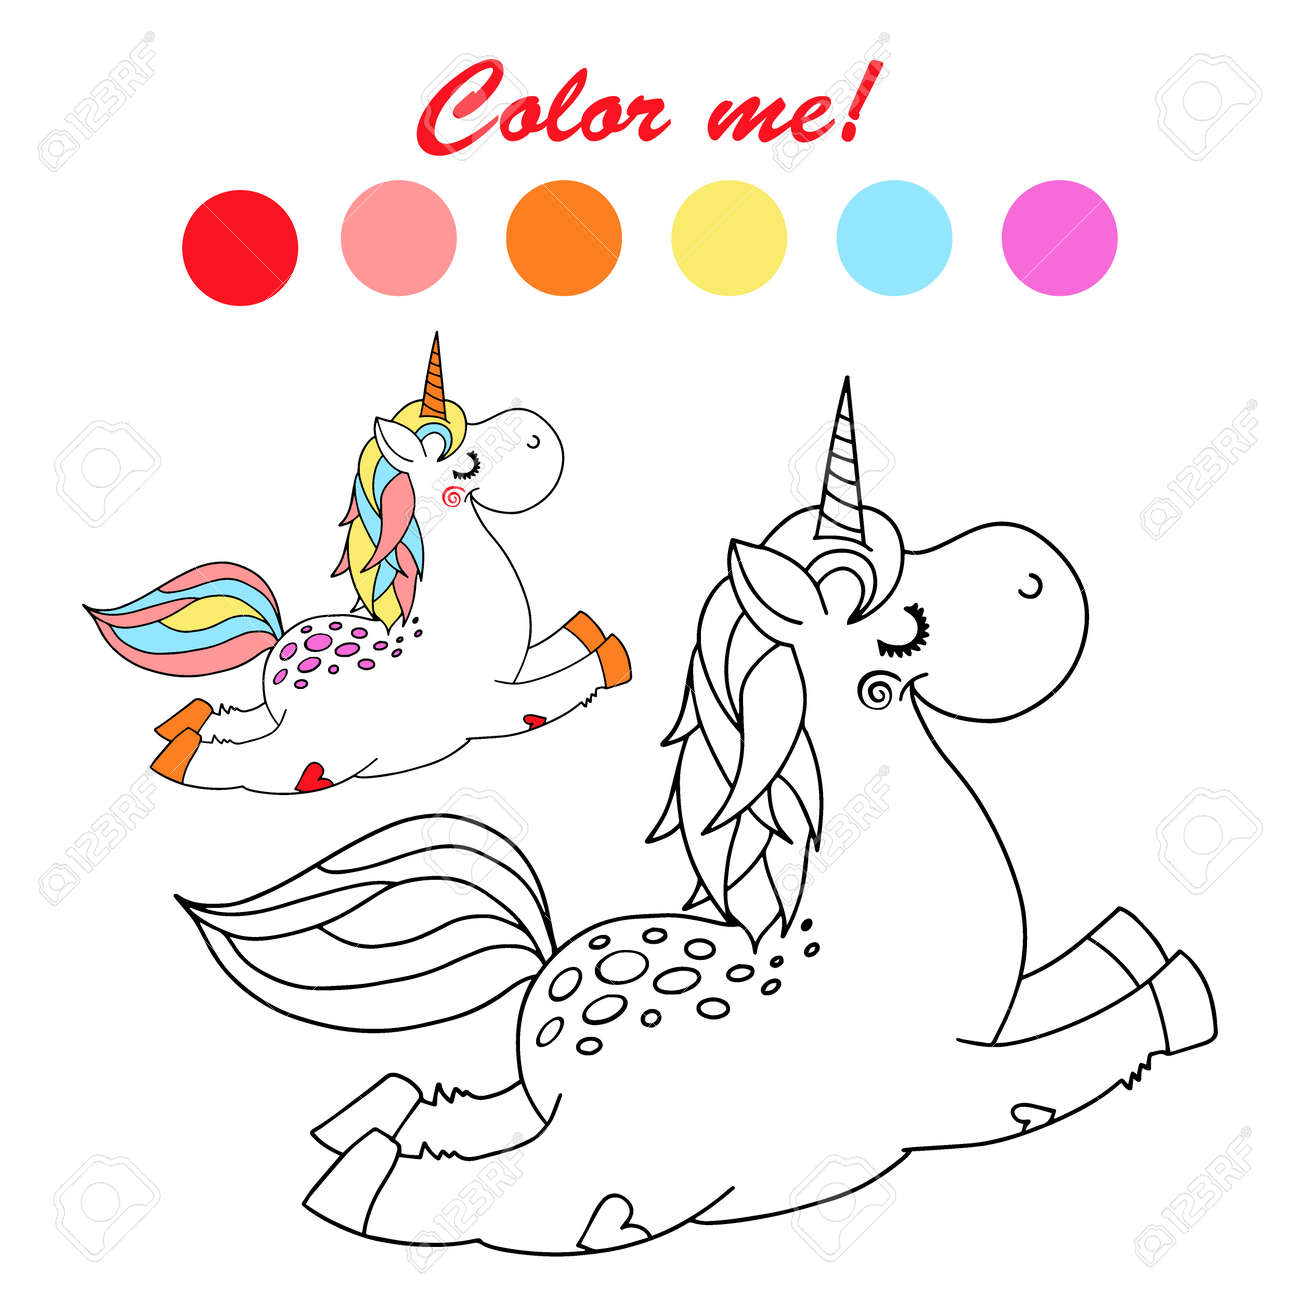 Hand drawn vector outlined funny unicorn coloring book page - 131561737